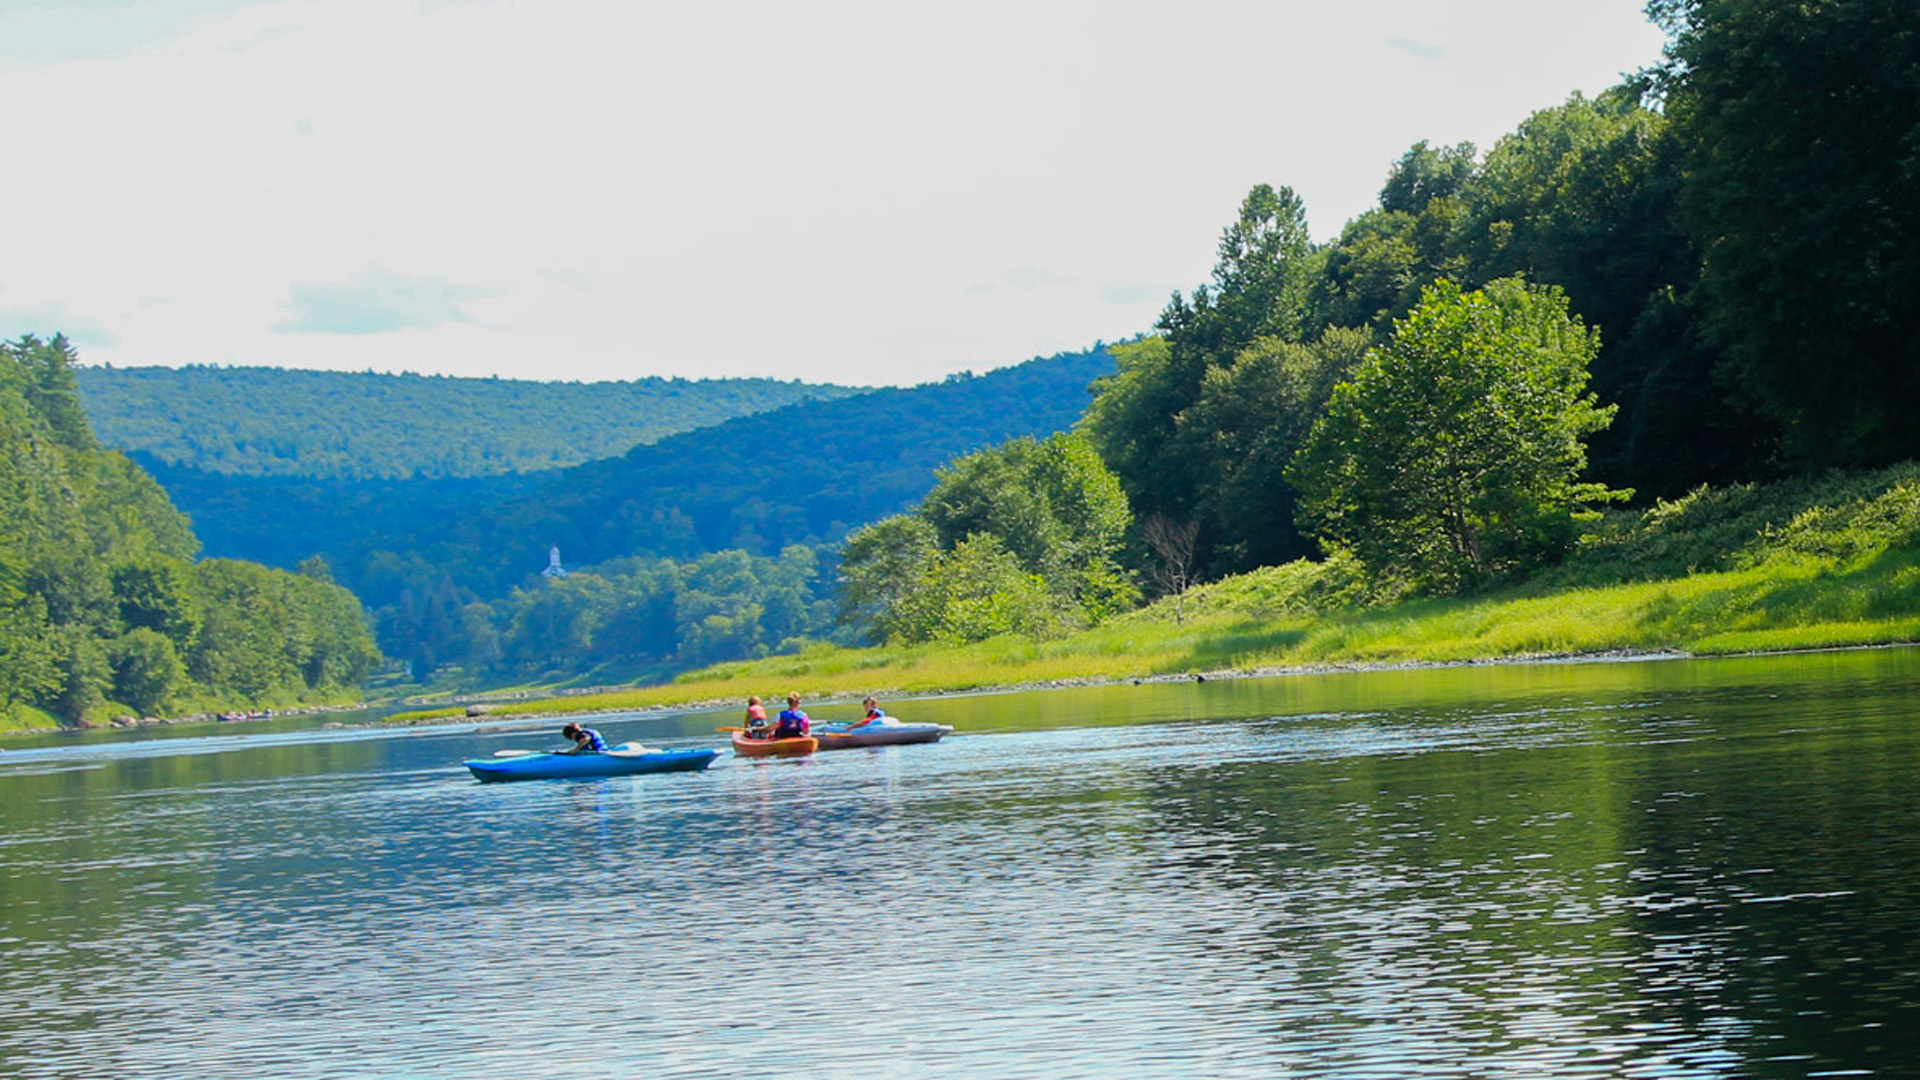 small groups enjoying calm waters and scenic views on river Indian Head Canoeing Rafting Kayaking Tubing Delaware River